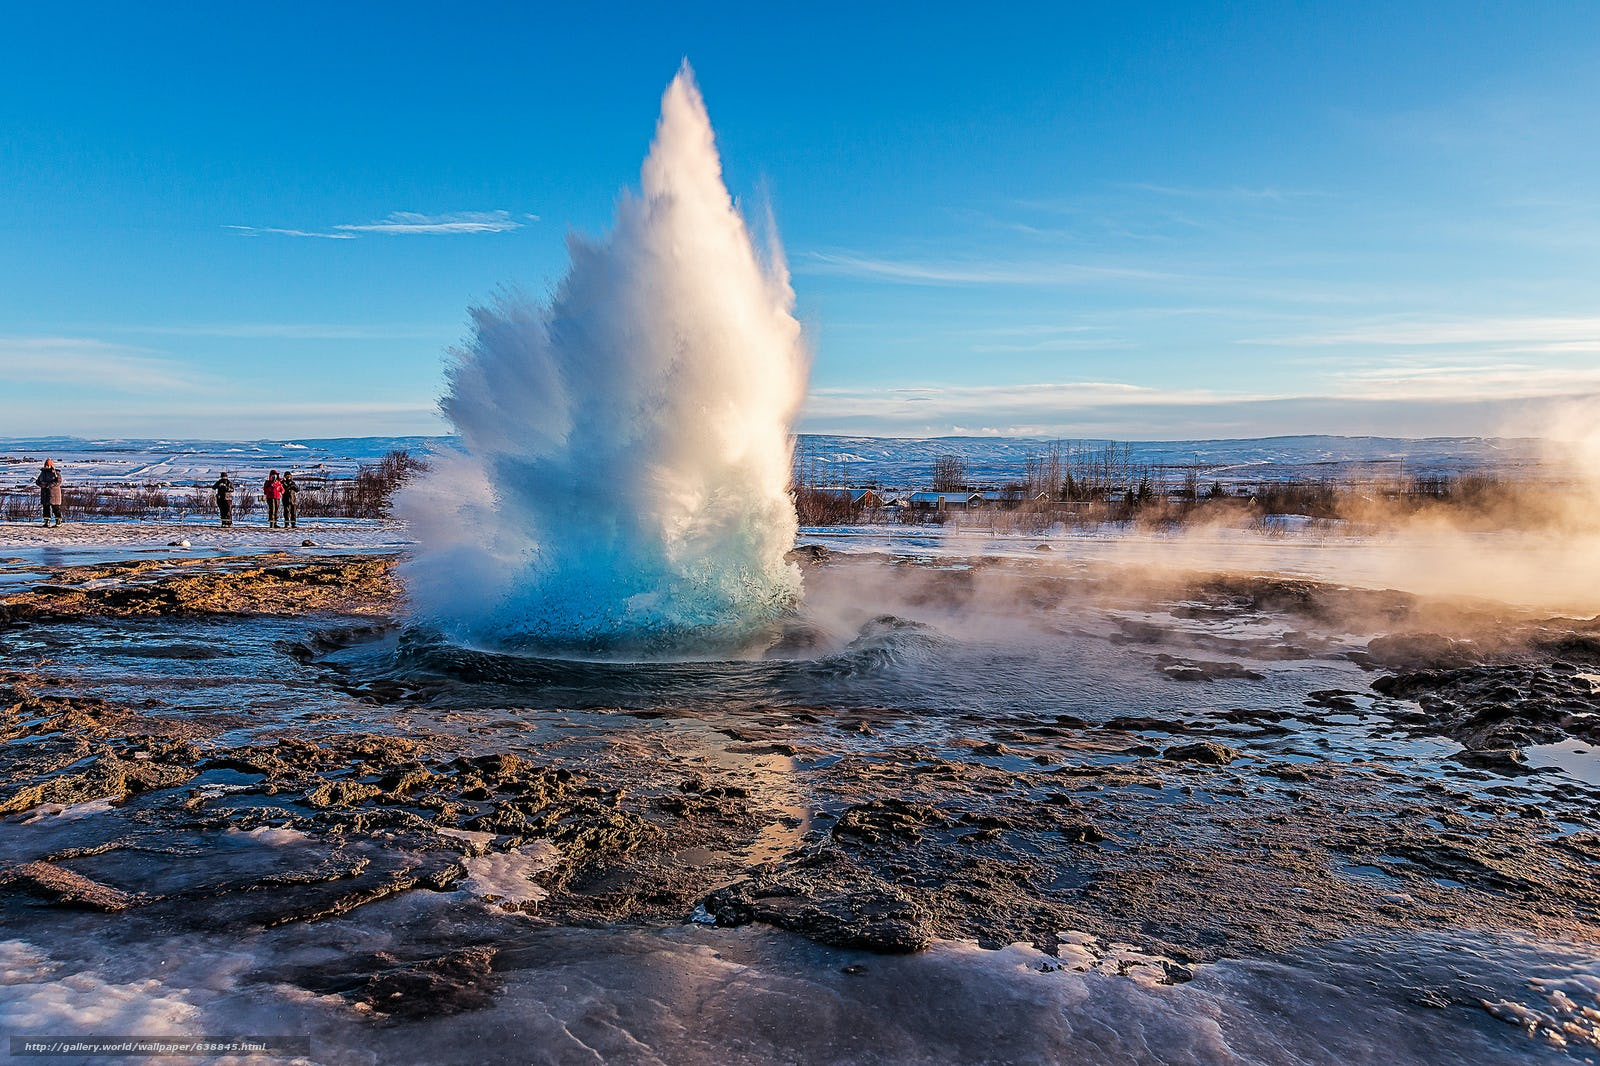 The Hot Spring, Strokkur, actively erupts every ten minutes or so, a fantastic spectacle for photographers and nature lovers alike.